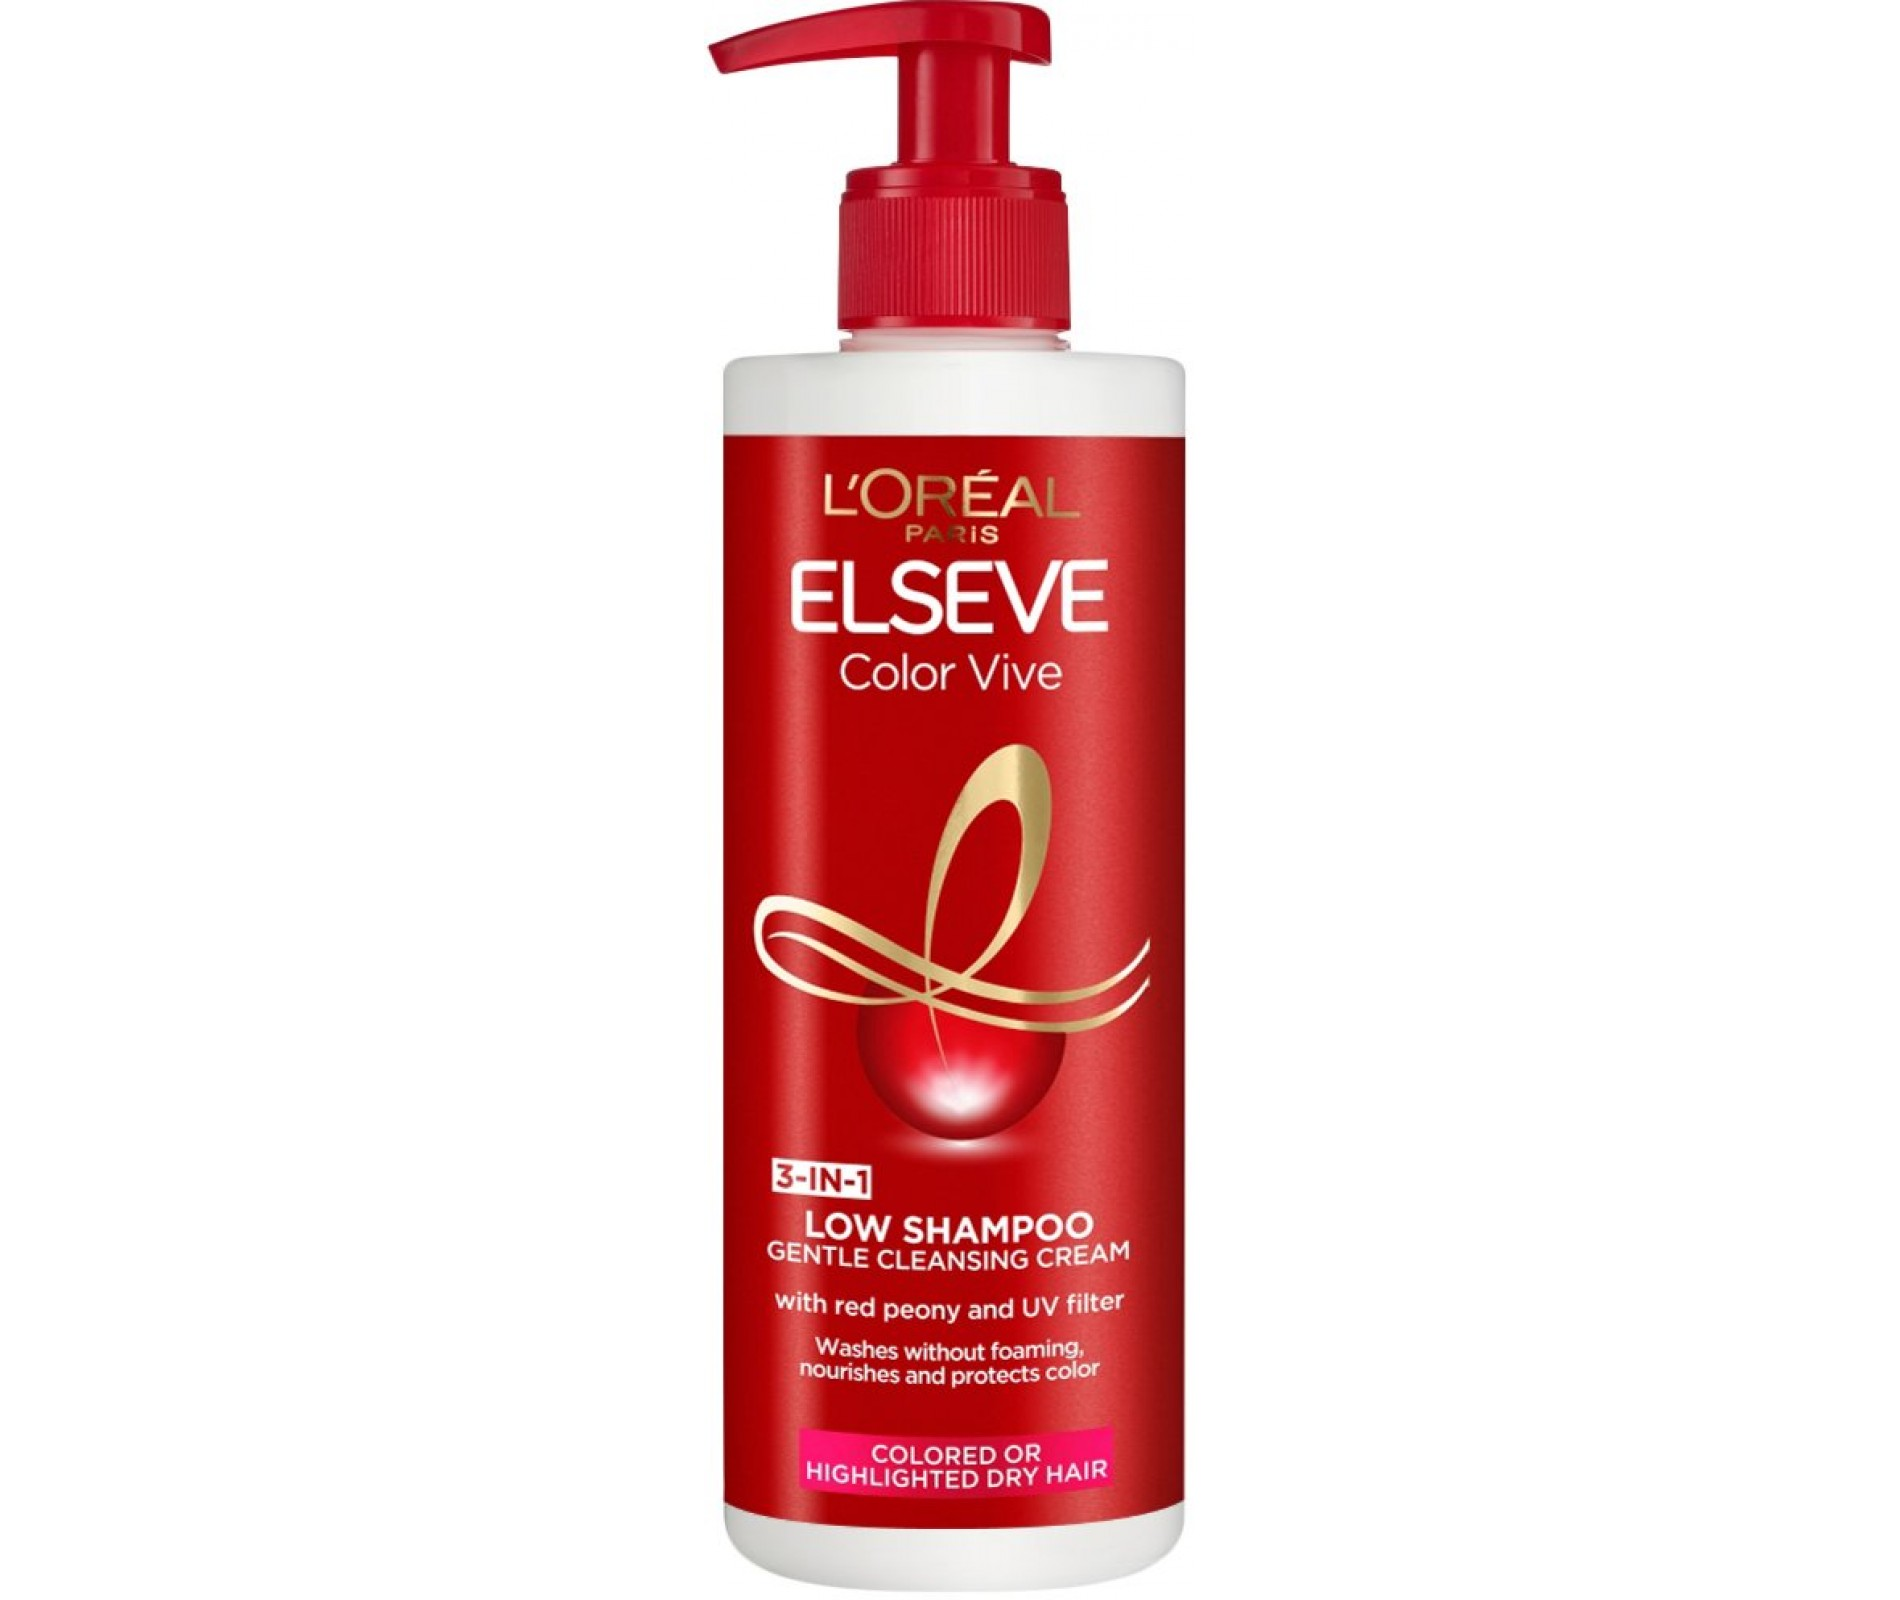 Elseve Color Vive Low Shampoo 3 in 1 Cleansing Cream 400 ml.